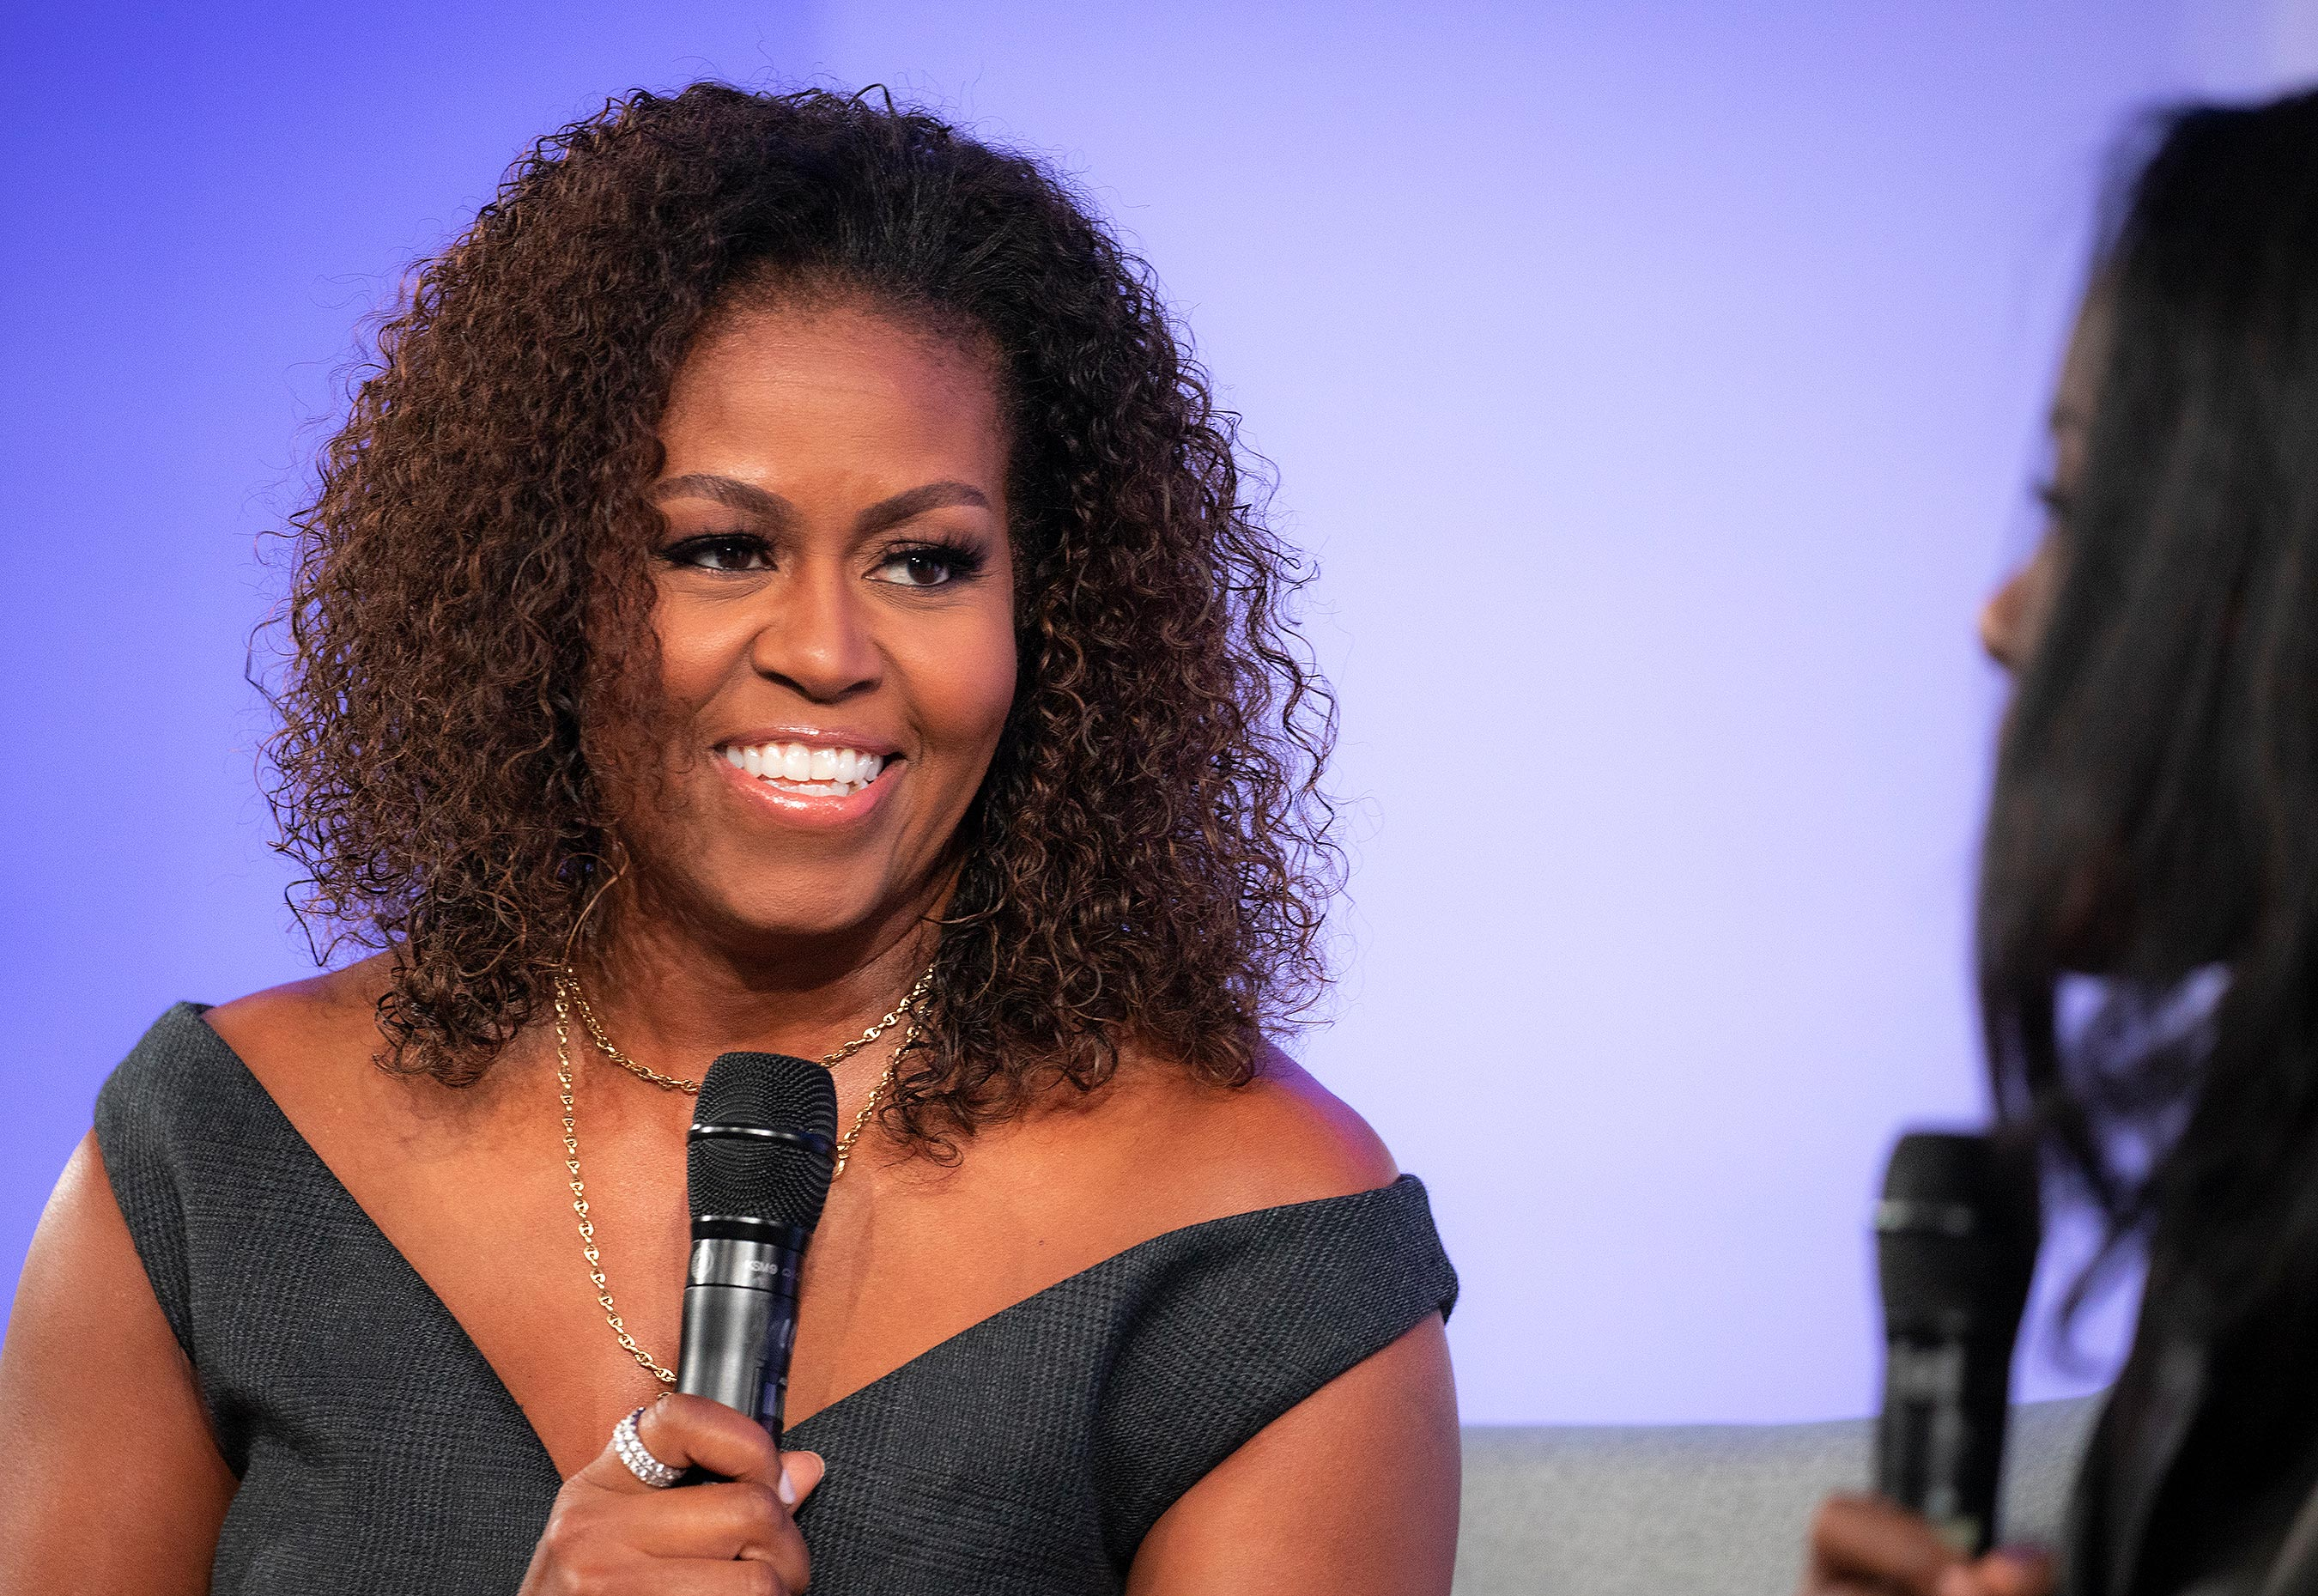 Michelle Obama Reassures Girl, 4, Who Went Viral for Calling Herself 'Ugly': 'Ariyonna, You Are Gorgeous'